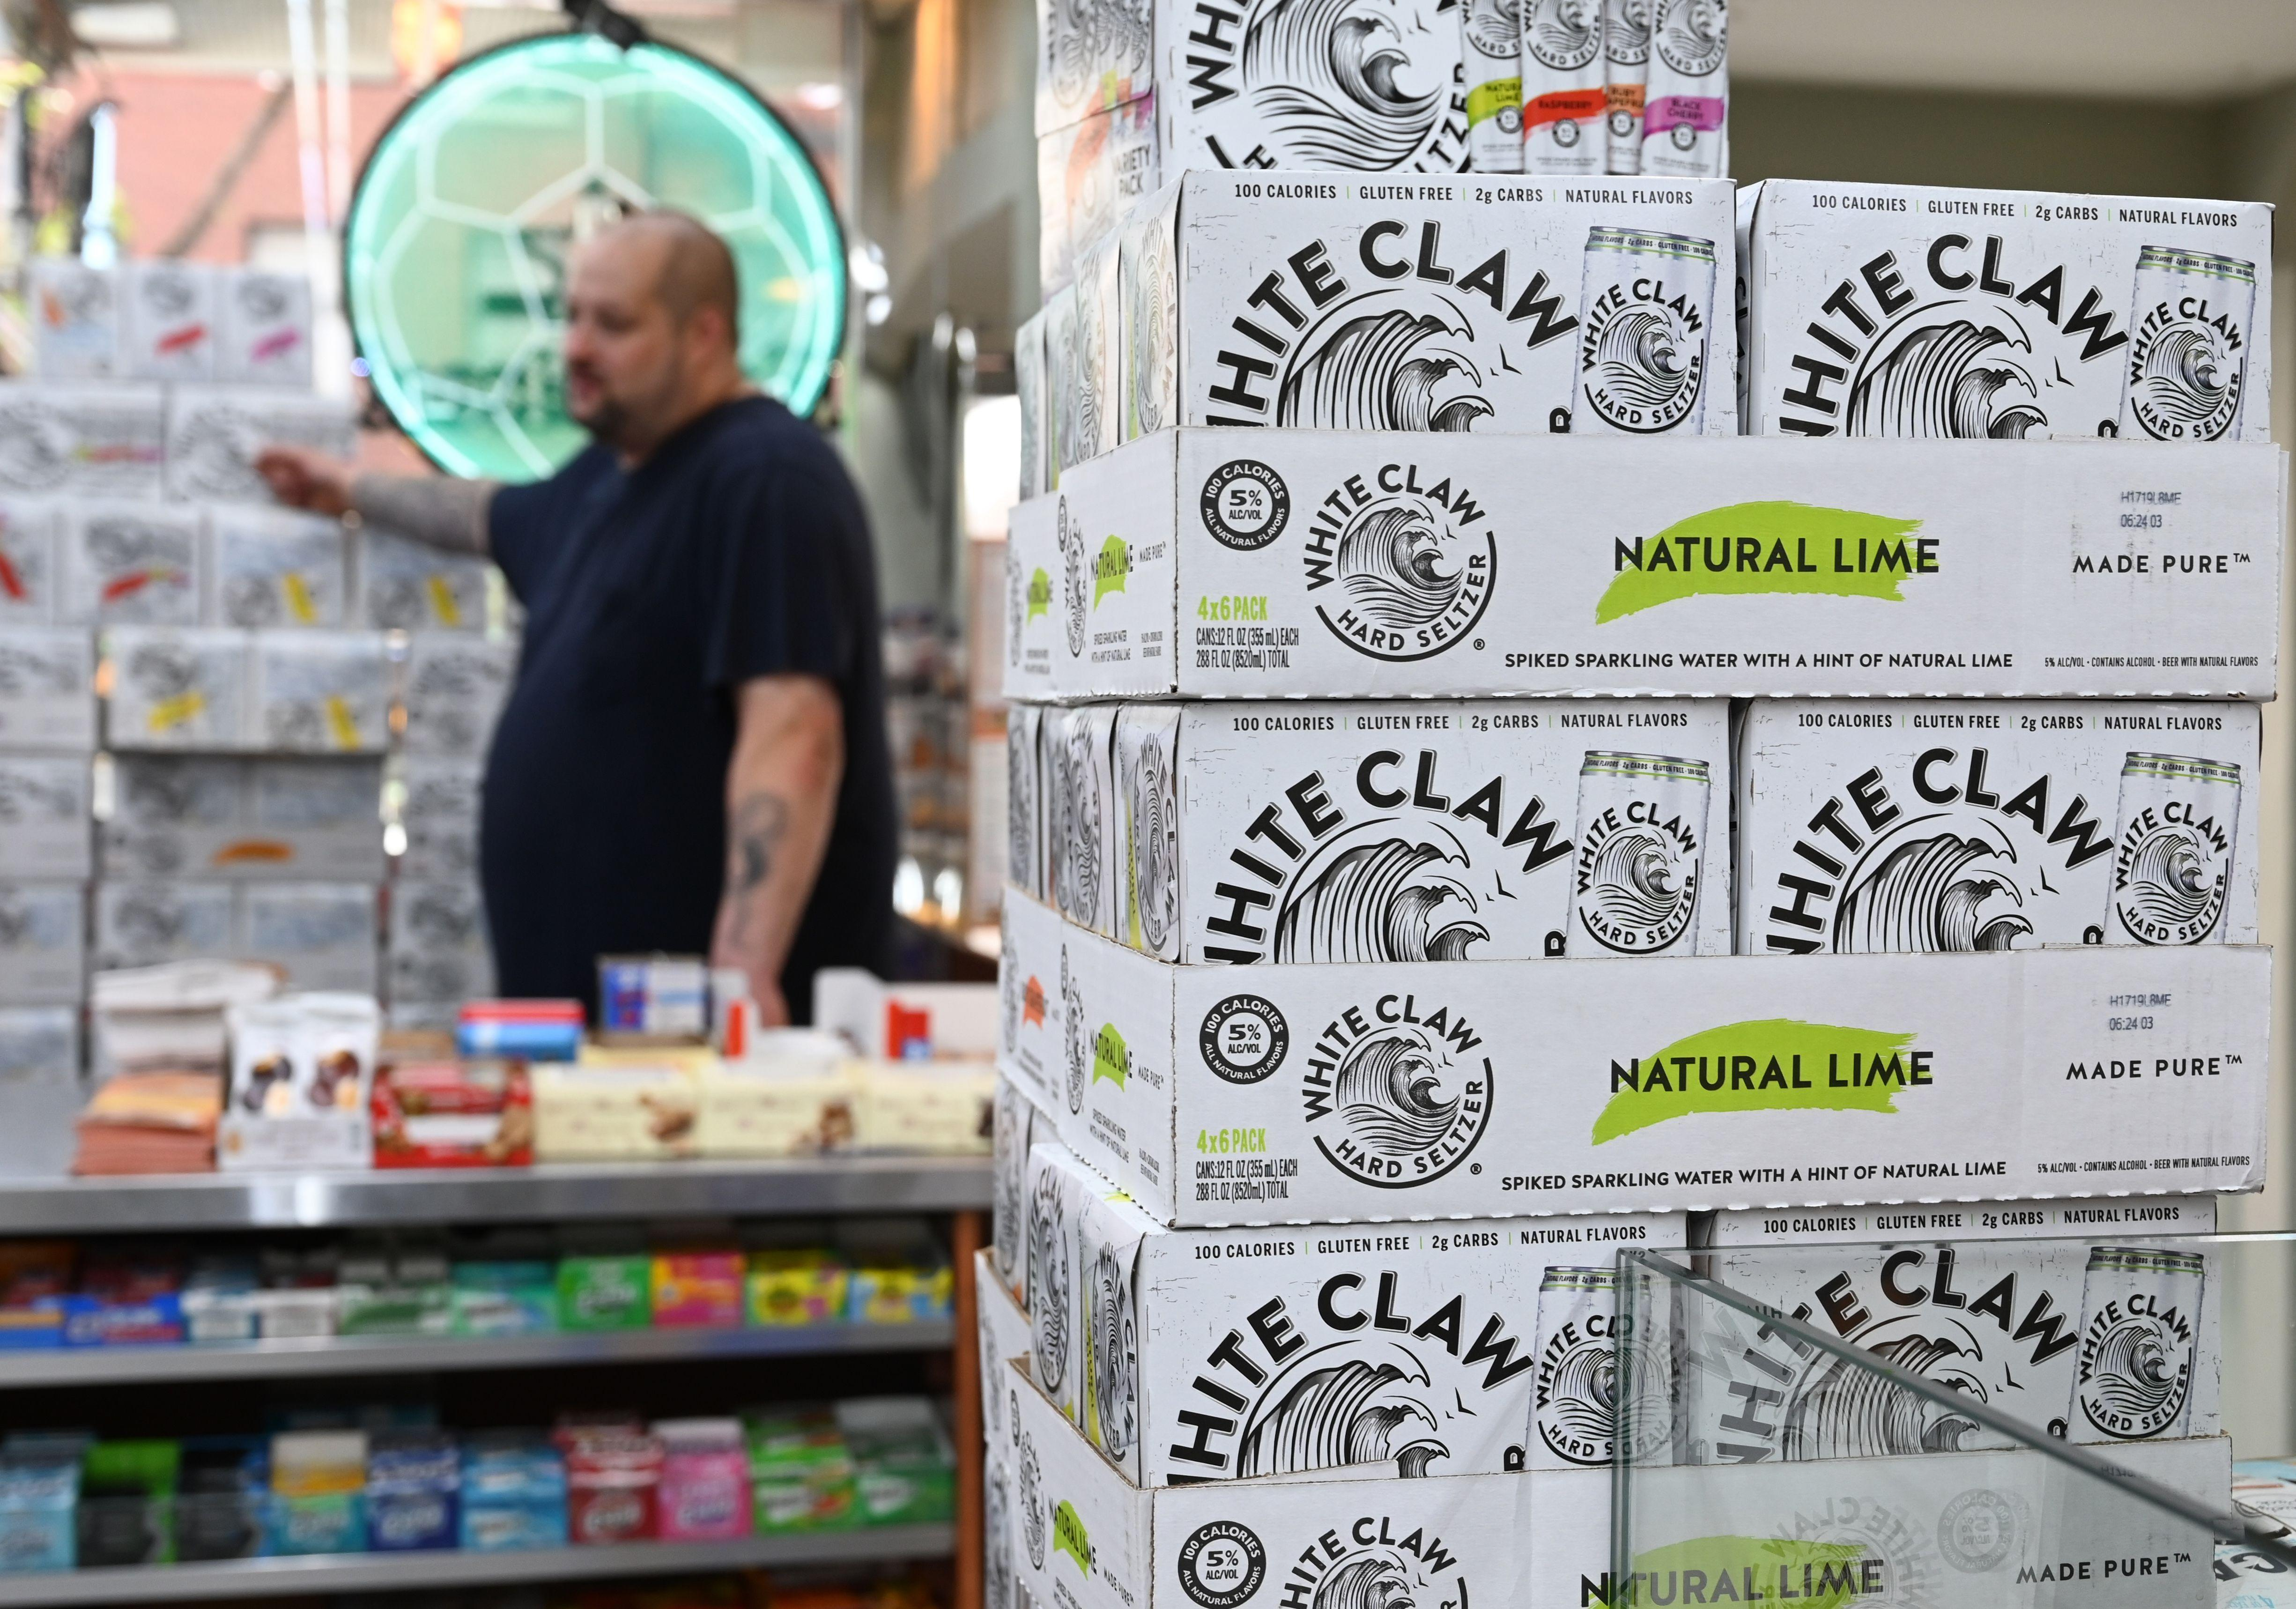 White Claw, DoorDash top the list of 2019's fastest-growing brands